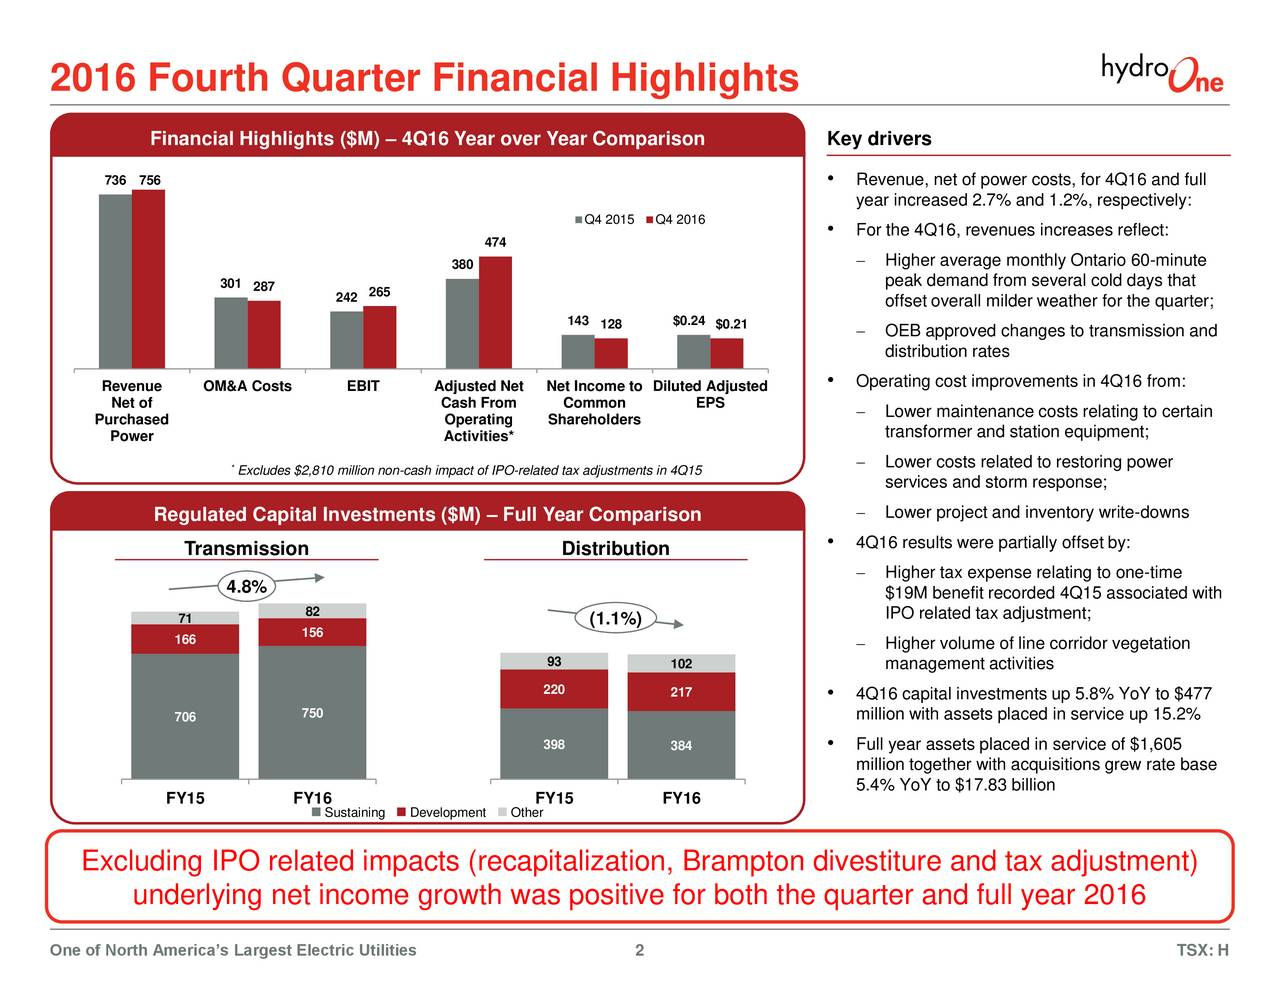 Financial Highlights ($M)  4Q16 Year over Year Comparison Key drivers 736 756  Revenue, net of power costs, for 4Q16 and full year increased 2.7% and 1.2%, respectively: Q4 2015 Q4 2016 For the 4Q16, revenues increases reflect: 474 380  Higher average monthly Ontario 60-minute 301 peak demand from several cold days that 287 242 265 offset overall milder weather for the quarter; 143 128 $0.24 $0.21  OEB approved changes to transmission and distribution rates Revenue OM&A Costs EBIT Adjusted Net Net Income to Diluted Adjusted  Operating cost improvements in 4Q16 from: Net of Cash From Common EPS Purchased Operating Shareholders  Lower maintenance costs relating to certain Power Activities* transformer and station equipment; Excludes $2,810 million non-cash impact of IPO-related tax adjustments in 4Q15  Lower costs related to restoring power services and storm response; Regulated Capital Investments ($M)  Full Year Comparison  Lower project and inventory write-downs Transmission Distribution  4Q16 results were partially offset by: Higher tax expense relating to one-time 4.8% $19M benefit recorded 4Q15 associated with 82 IPO related tax adjustment; 71 (1.1%) 166 156  Higher volume of line corridor vegetation 93 102 management activities 220 217 4Q16 capital investments up 5.8% YoY to $477 706 750 million with assets placed in service up 15.2% 398 384  Full year assets placed in service of $1,605 million together with acquisitions grew rate base 5.4% YoY to $17.83 billion FY15 FY16 FY15 FY16 Sustaining Development Other Excluding IPO related impacts (recapitalization, Brampton divestiture and tax adjustment) underlying net income growth was positive for both the quarter and full year 2016 One of North Americas Largest Electric Utilities 2 TSX: H